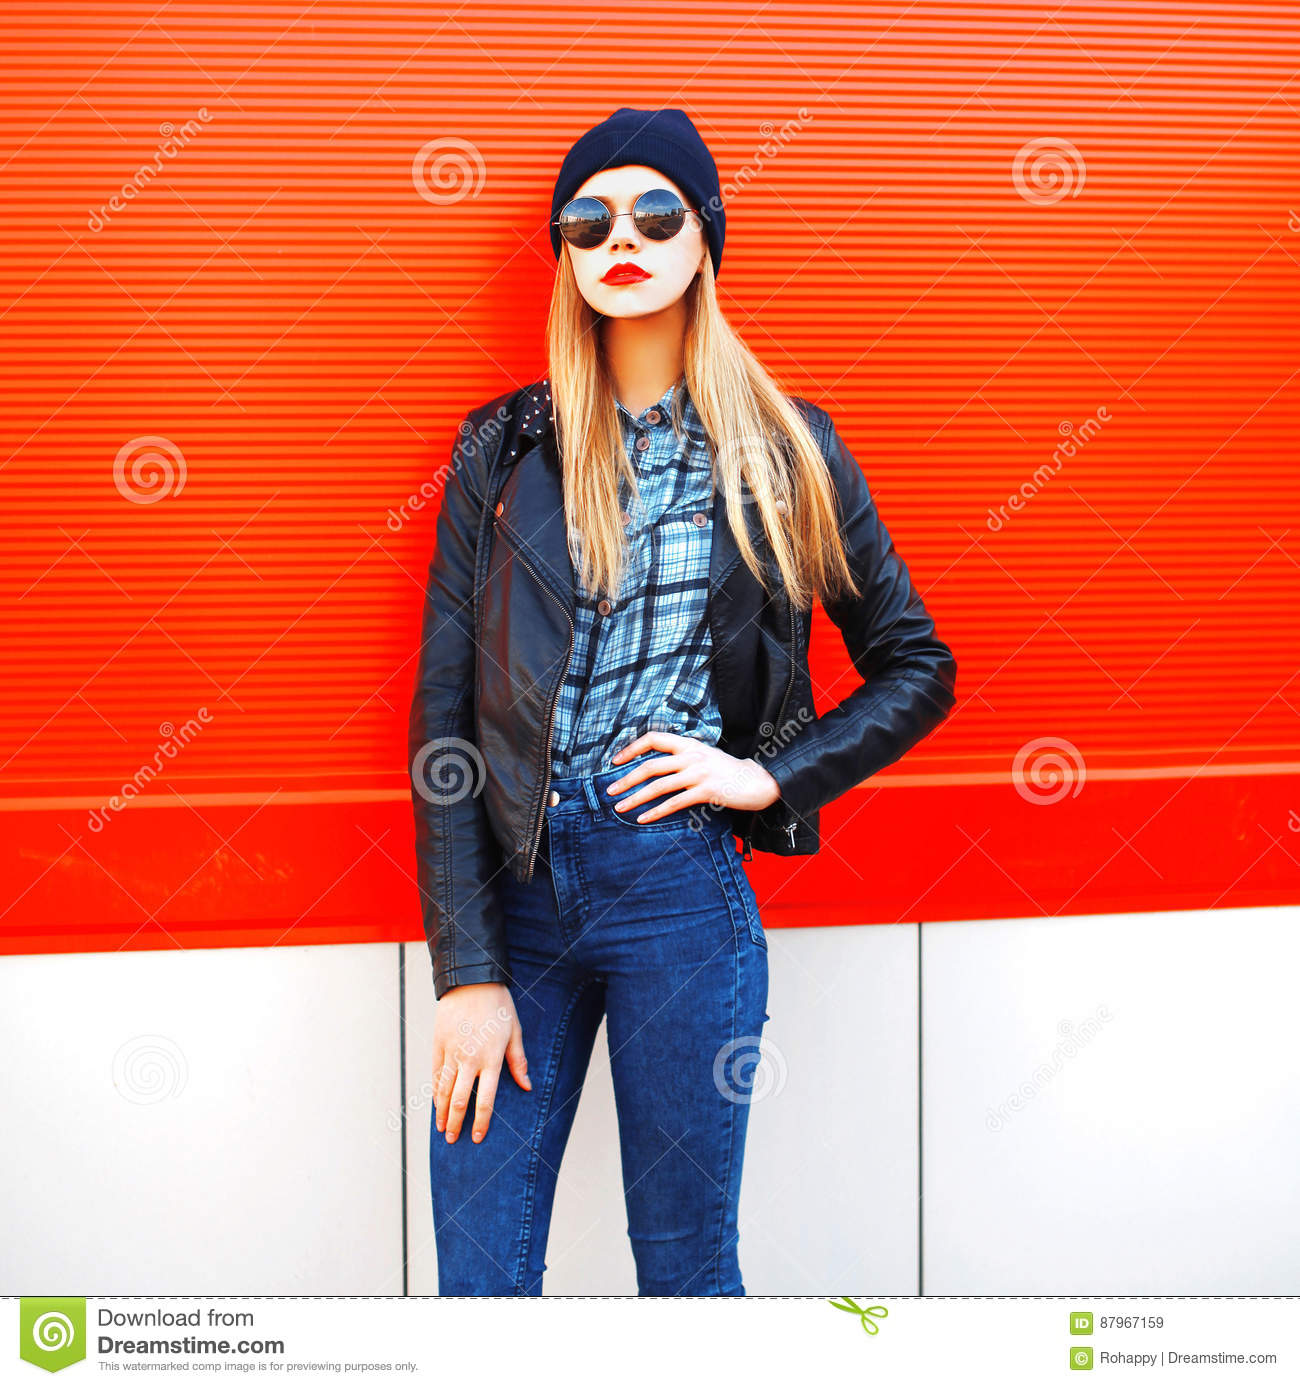 Fashion portrait beautiful blonde woman in rock black style on a red background in city